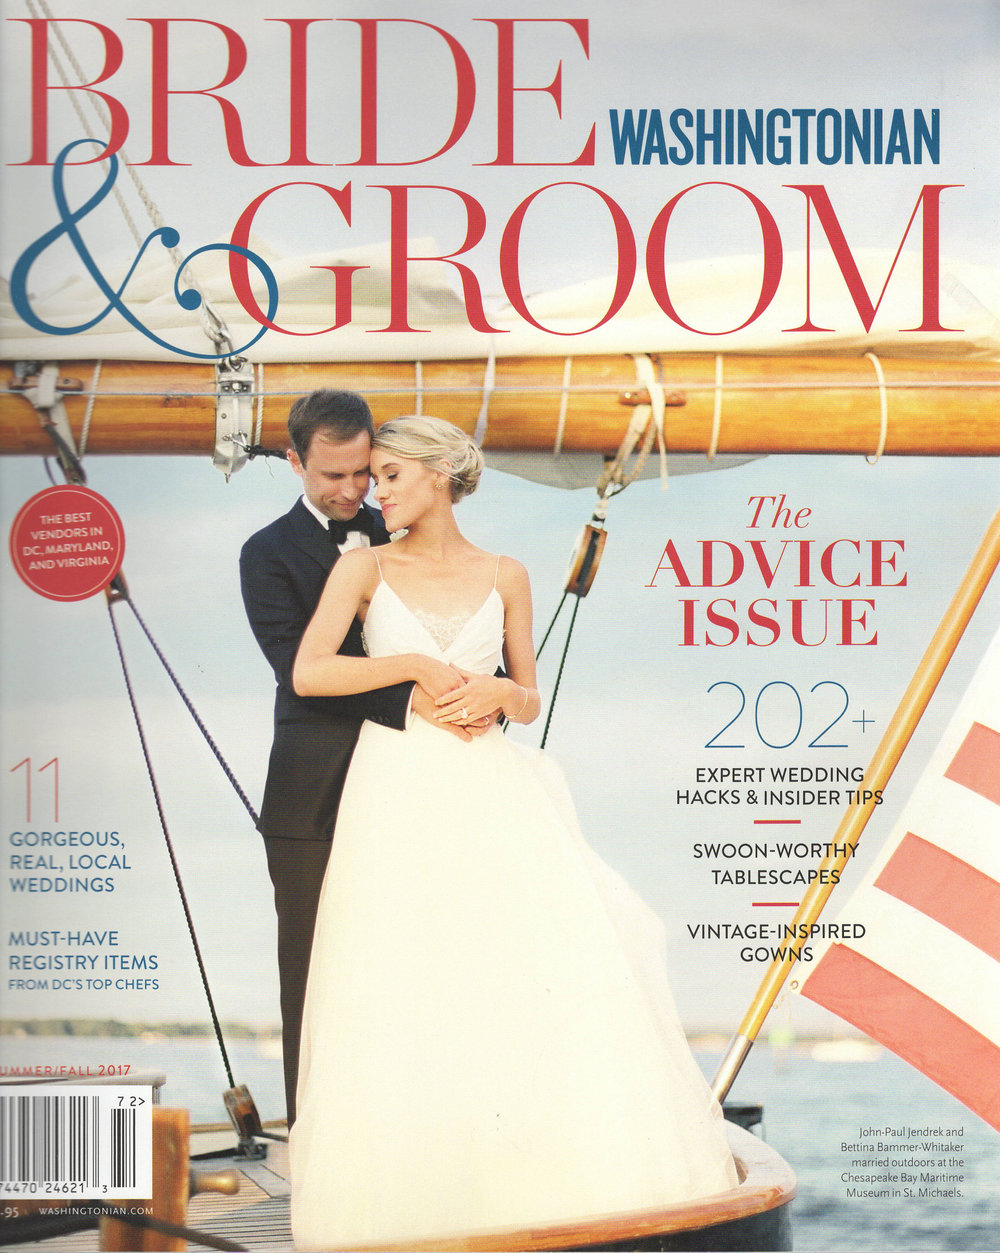 Washingtonian Bride & Groom 1.jpg